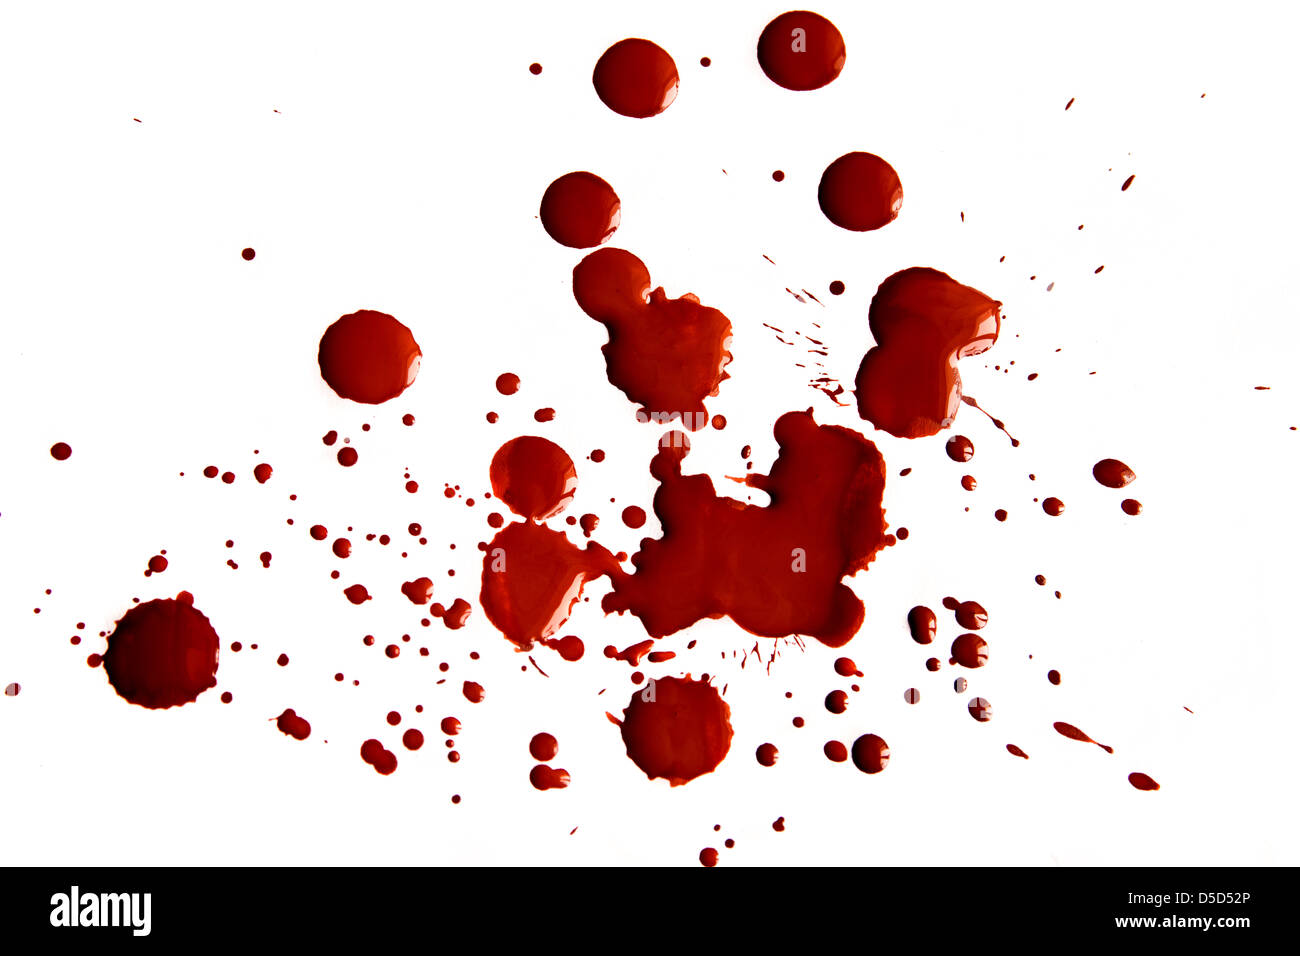 Blood stains isolated on white background - Stock Image